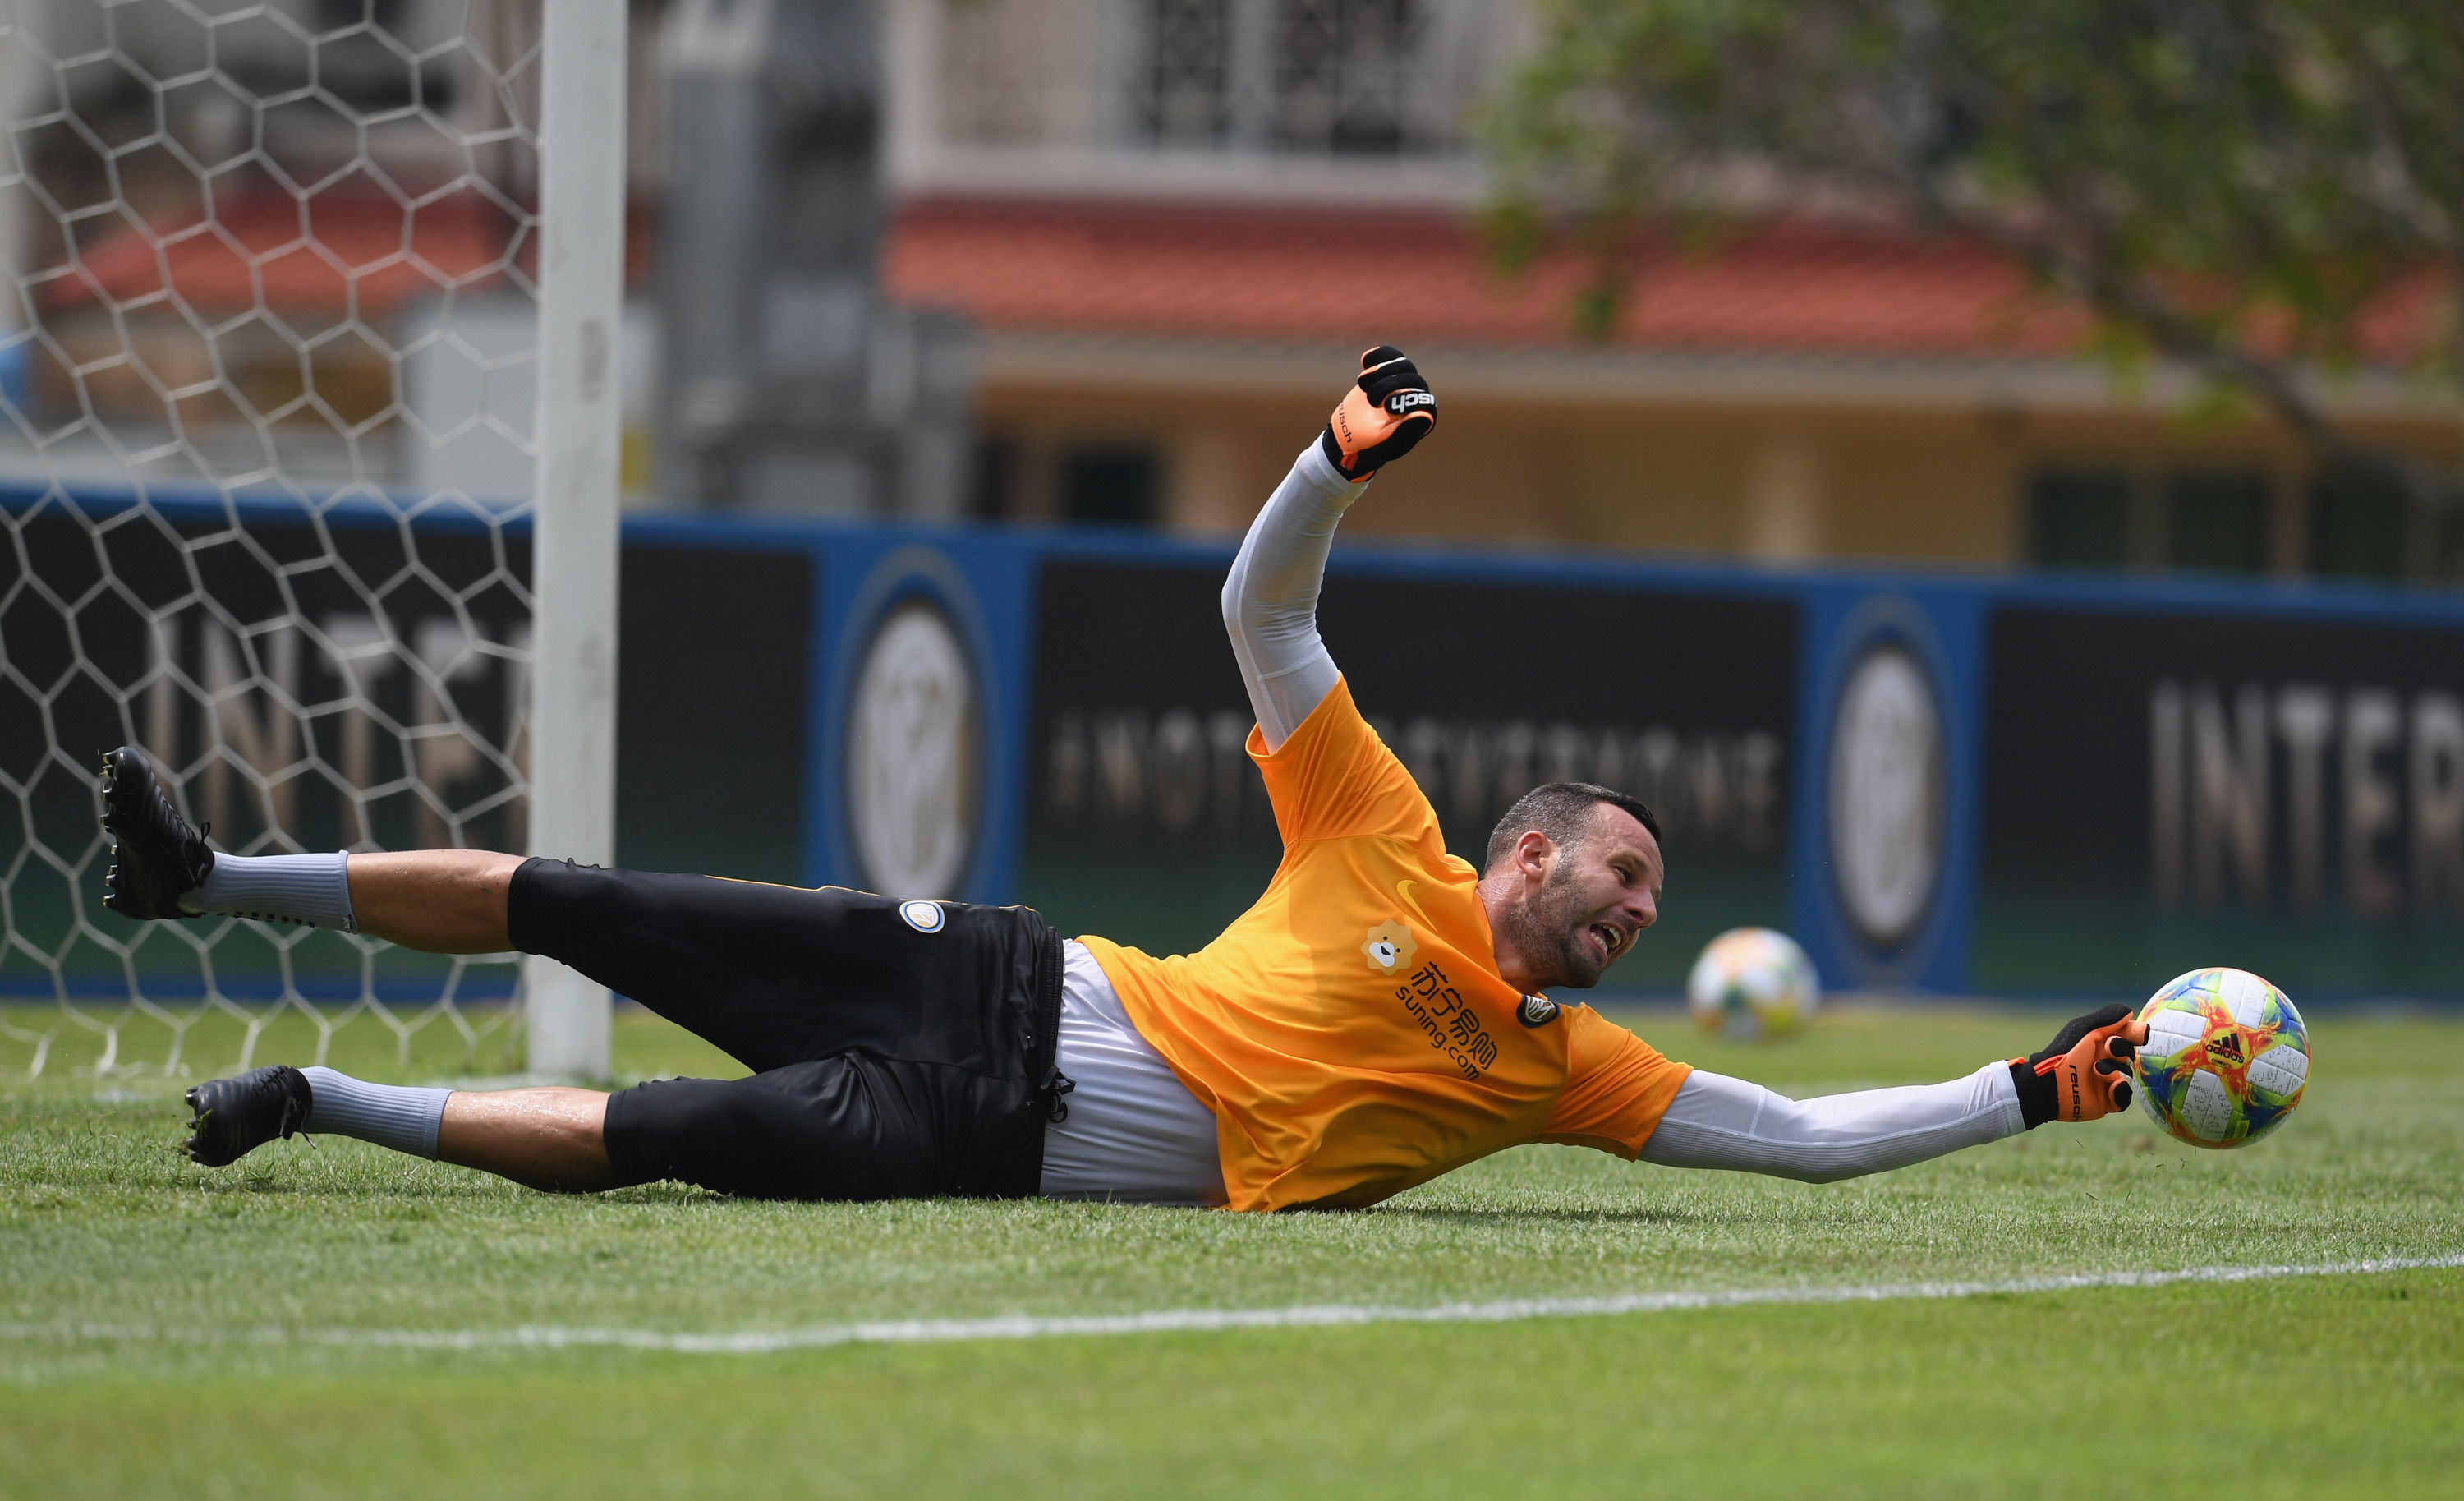 Inter's first training session in Singapore